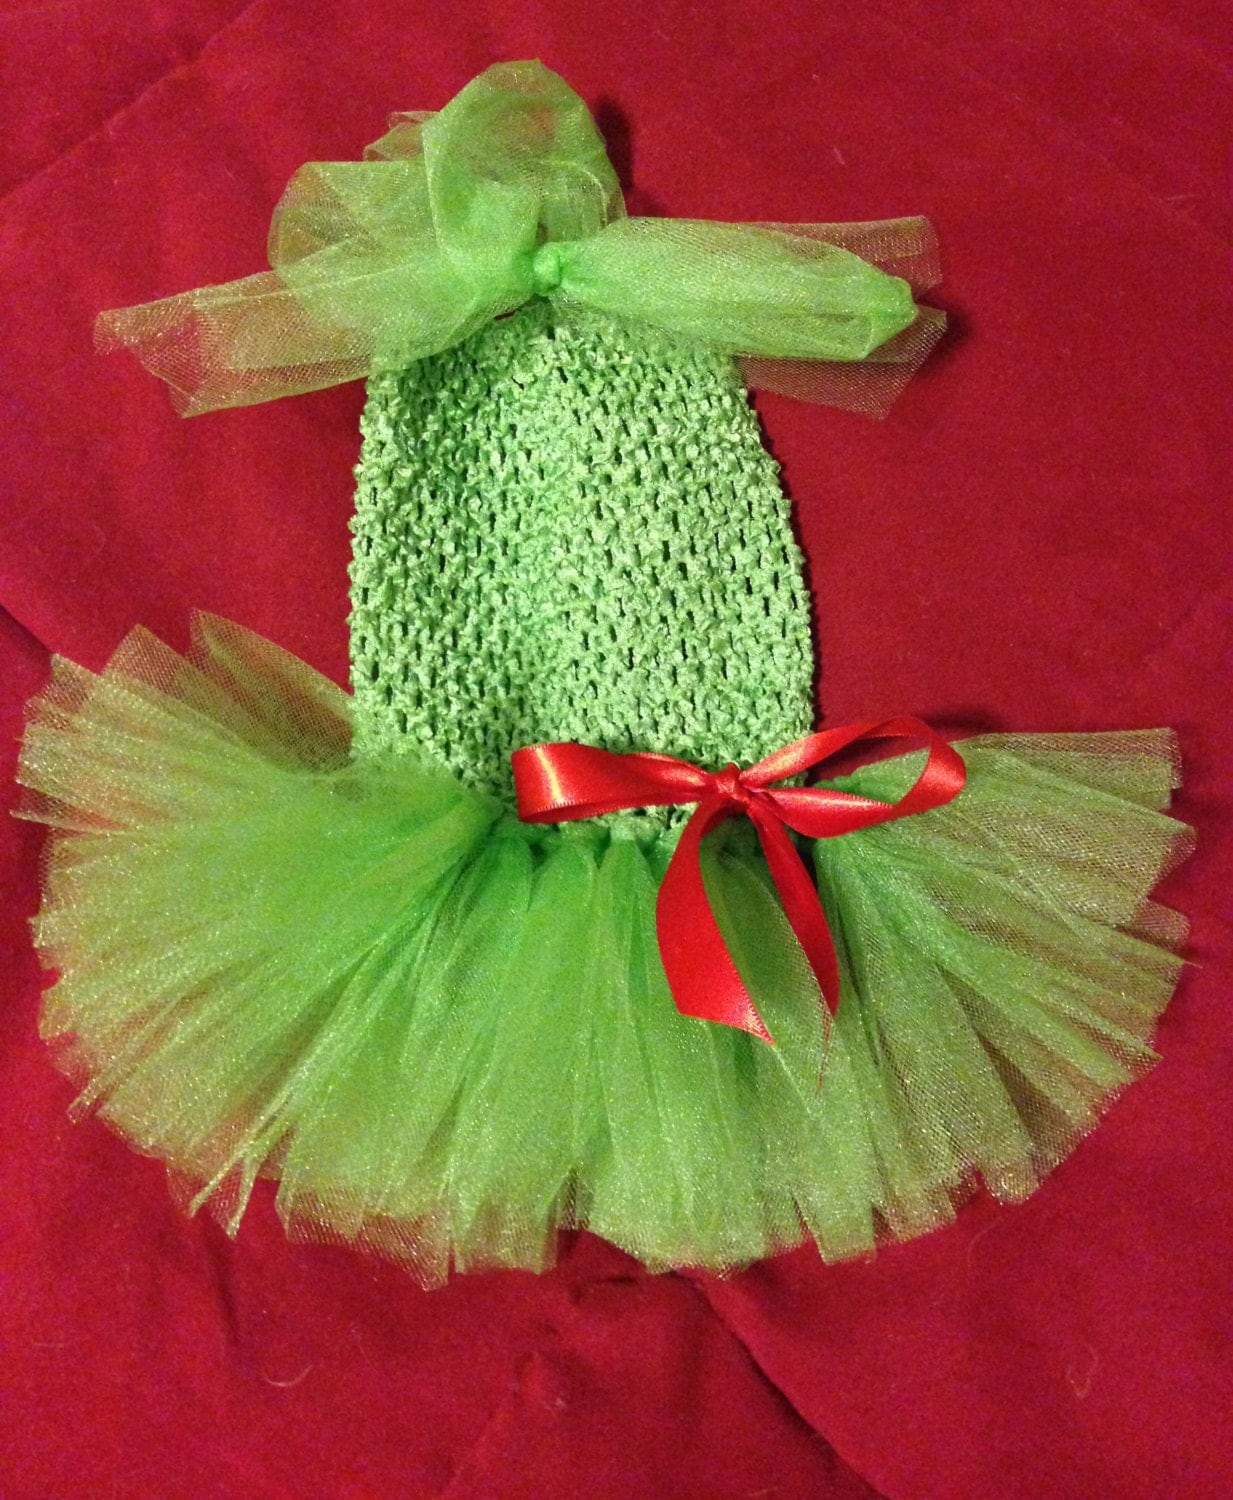 Grinch Dog Costume Lime Green Dress For Dogs Holiday Dog